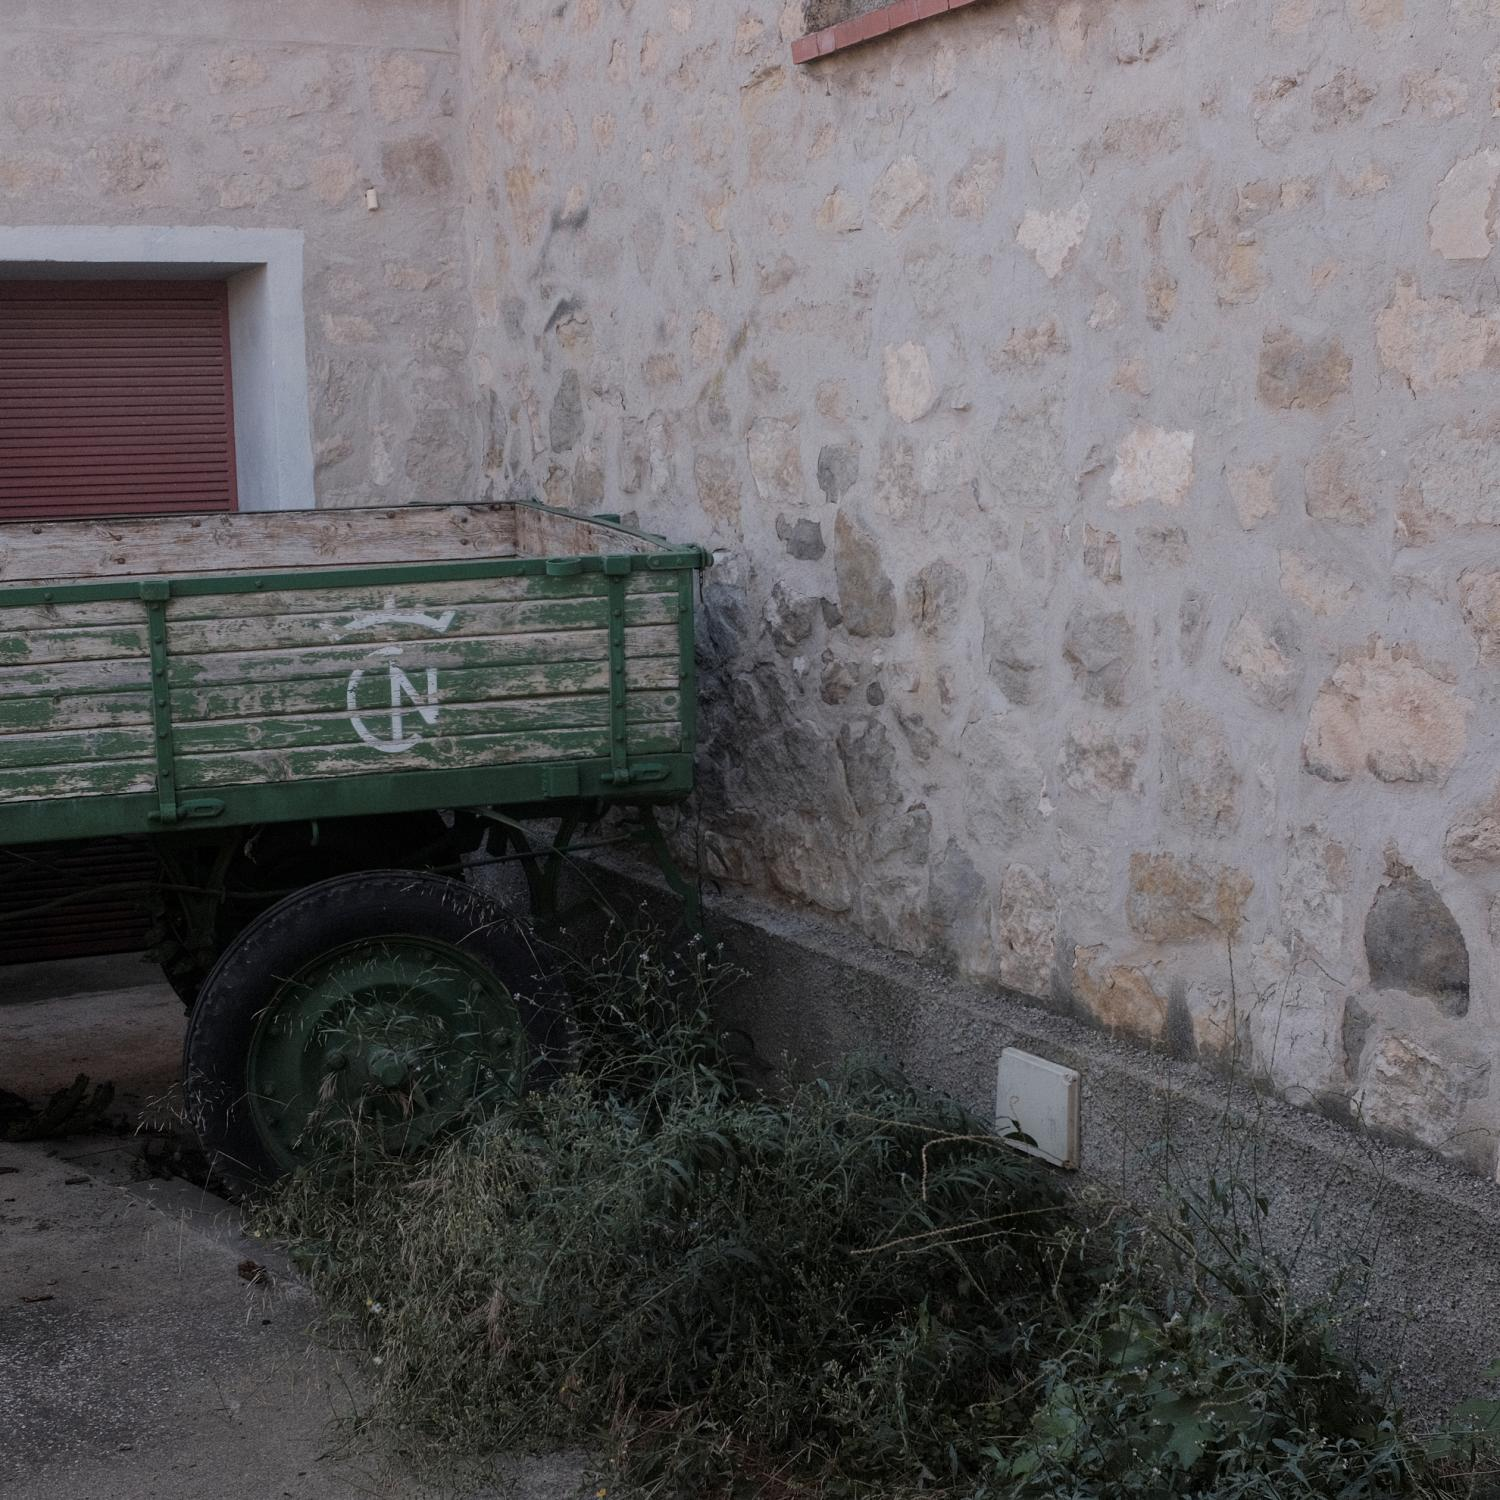 An old wagon with the logo of National Institute of Colonization inside the Settlers Museum in Sodeto (Huesca). After the Spanish civil war in 1936, under Francisco Franco�s dictatorship, an agriculture reform was enforced leading to the building of more than 300 new towns all around Spain. This towns were populated with people coming from other rural impoverished areas but most of them are in high risk of disappearing because the new generations are moving to cities and abandoning these areas. Copyright: Spanish photojournalist Andoni Lubaki.